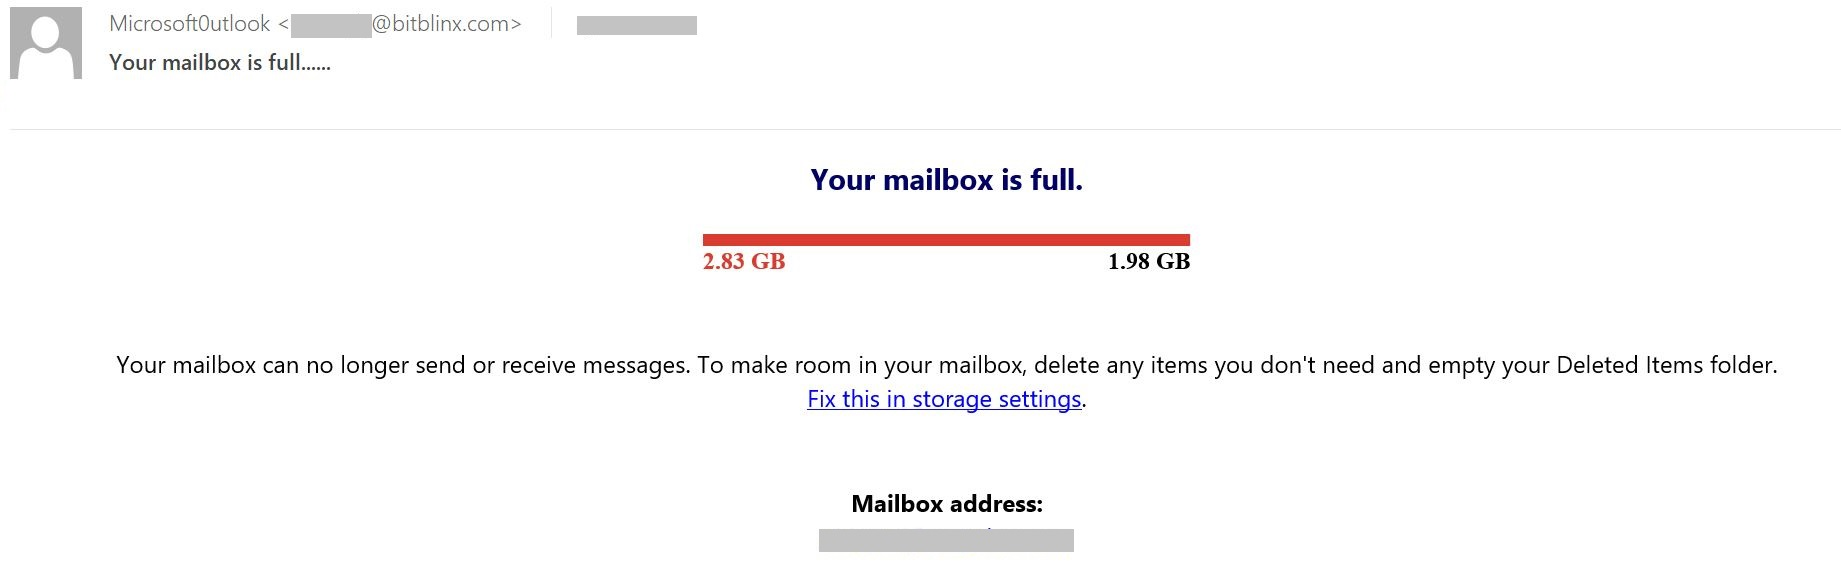 A typical phishing e-mail using a full-mailbox scam